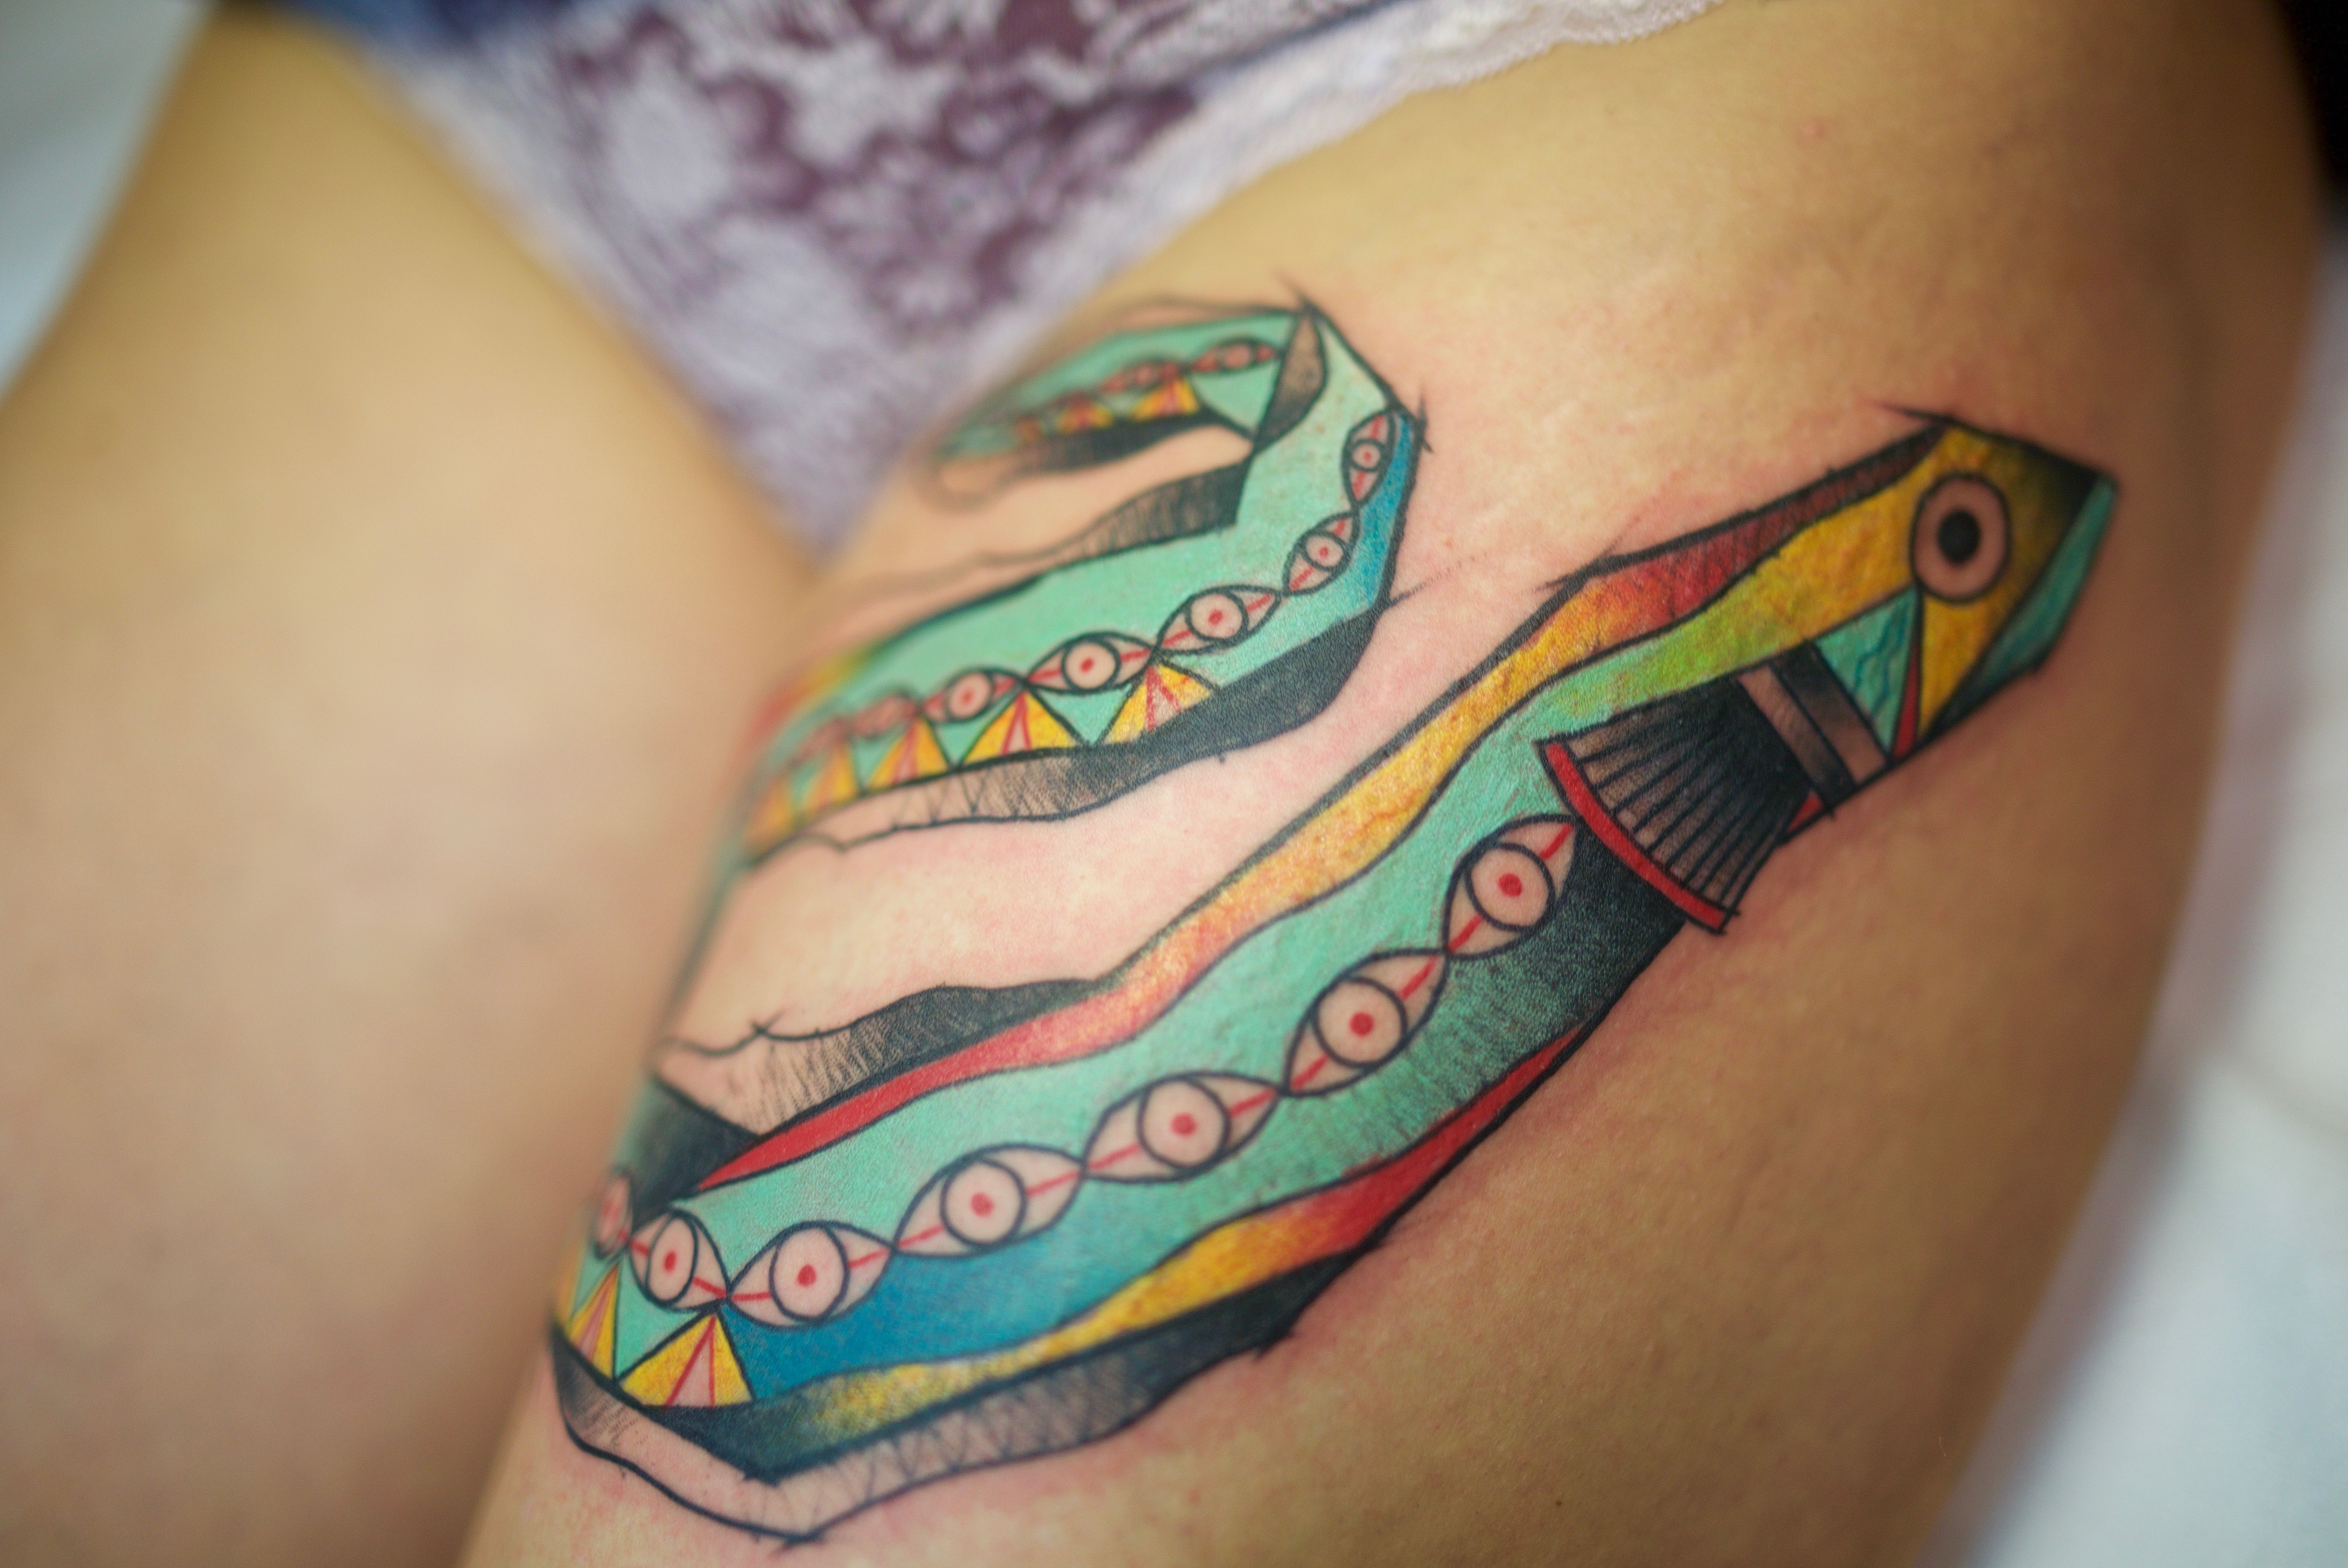 Eel tattoo